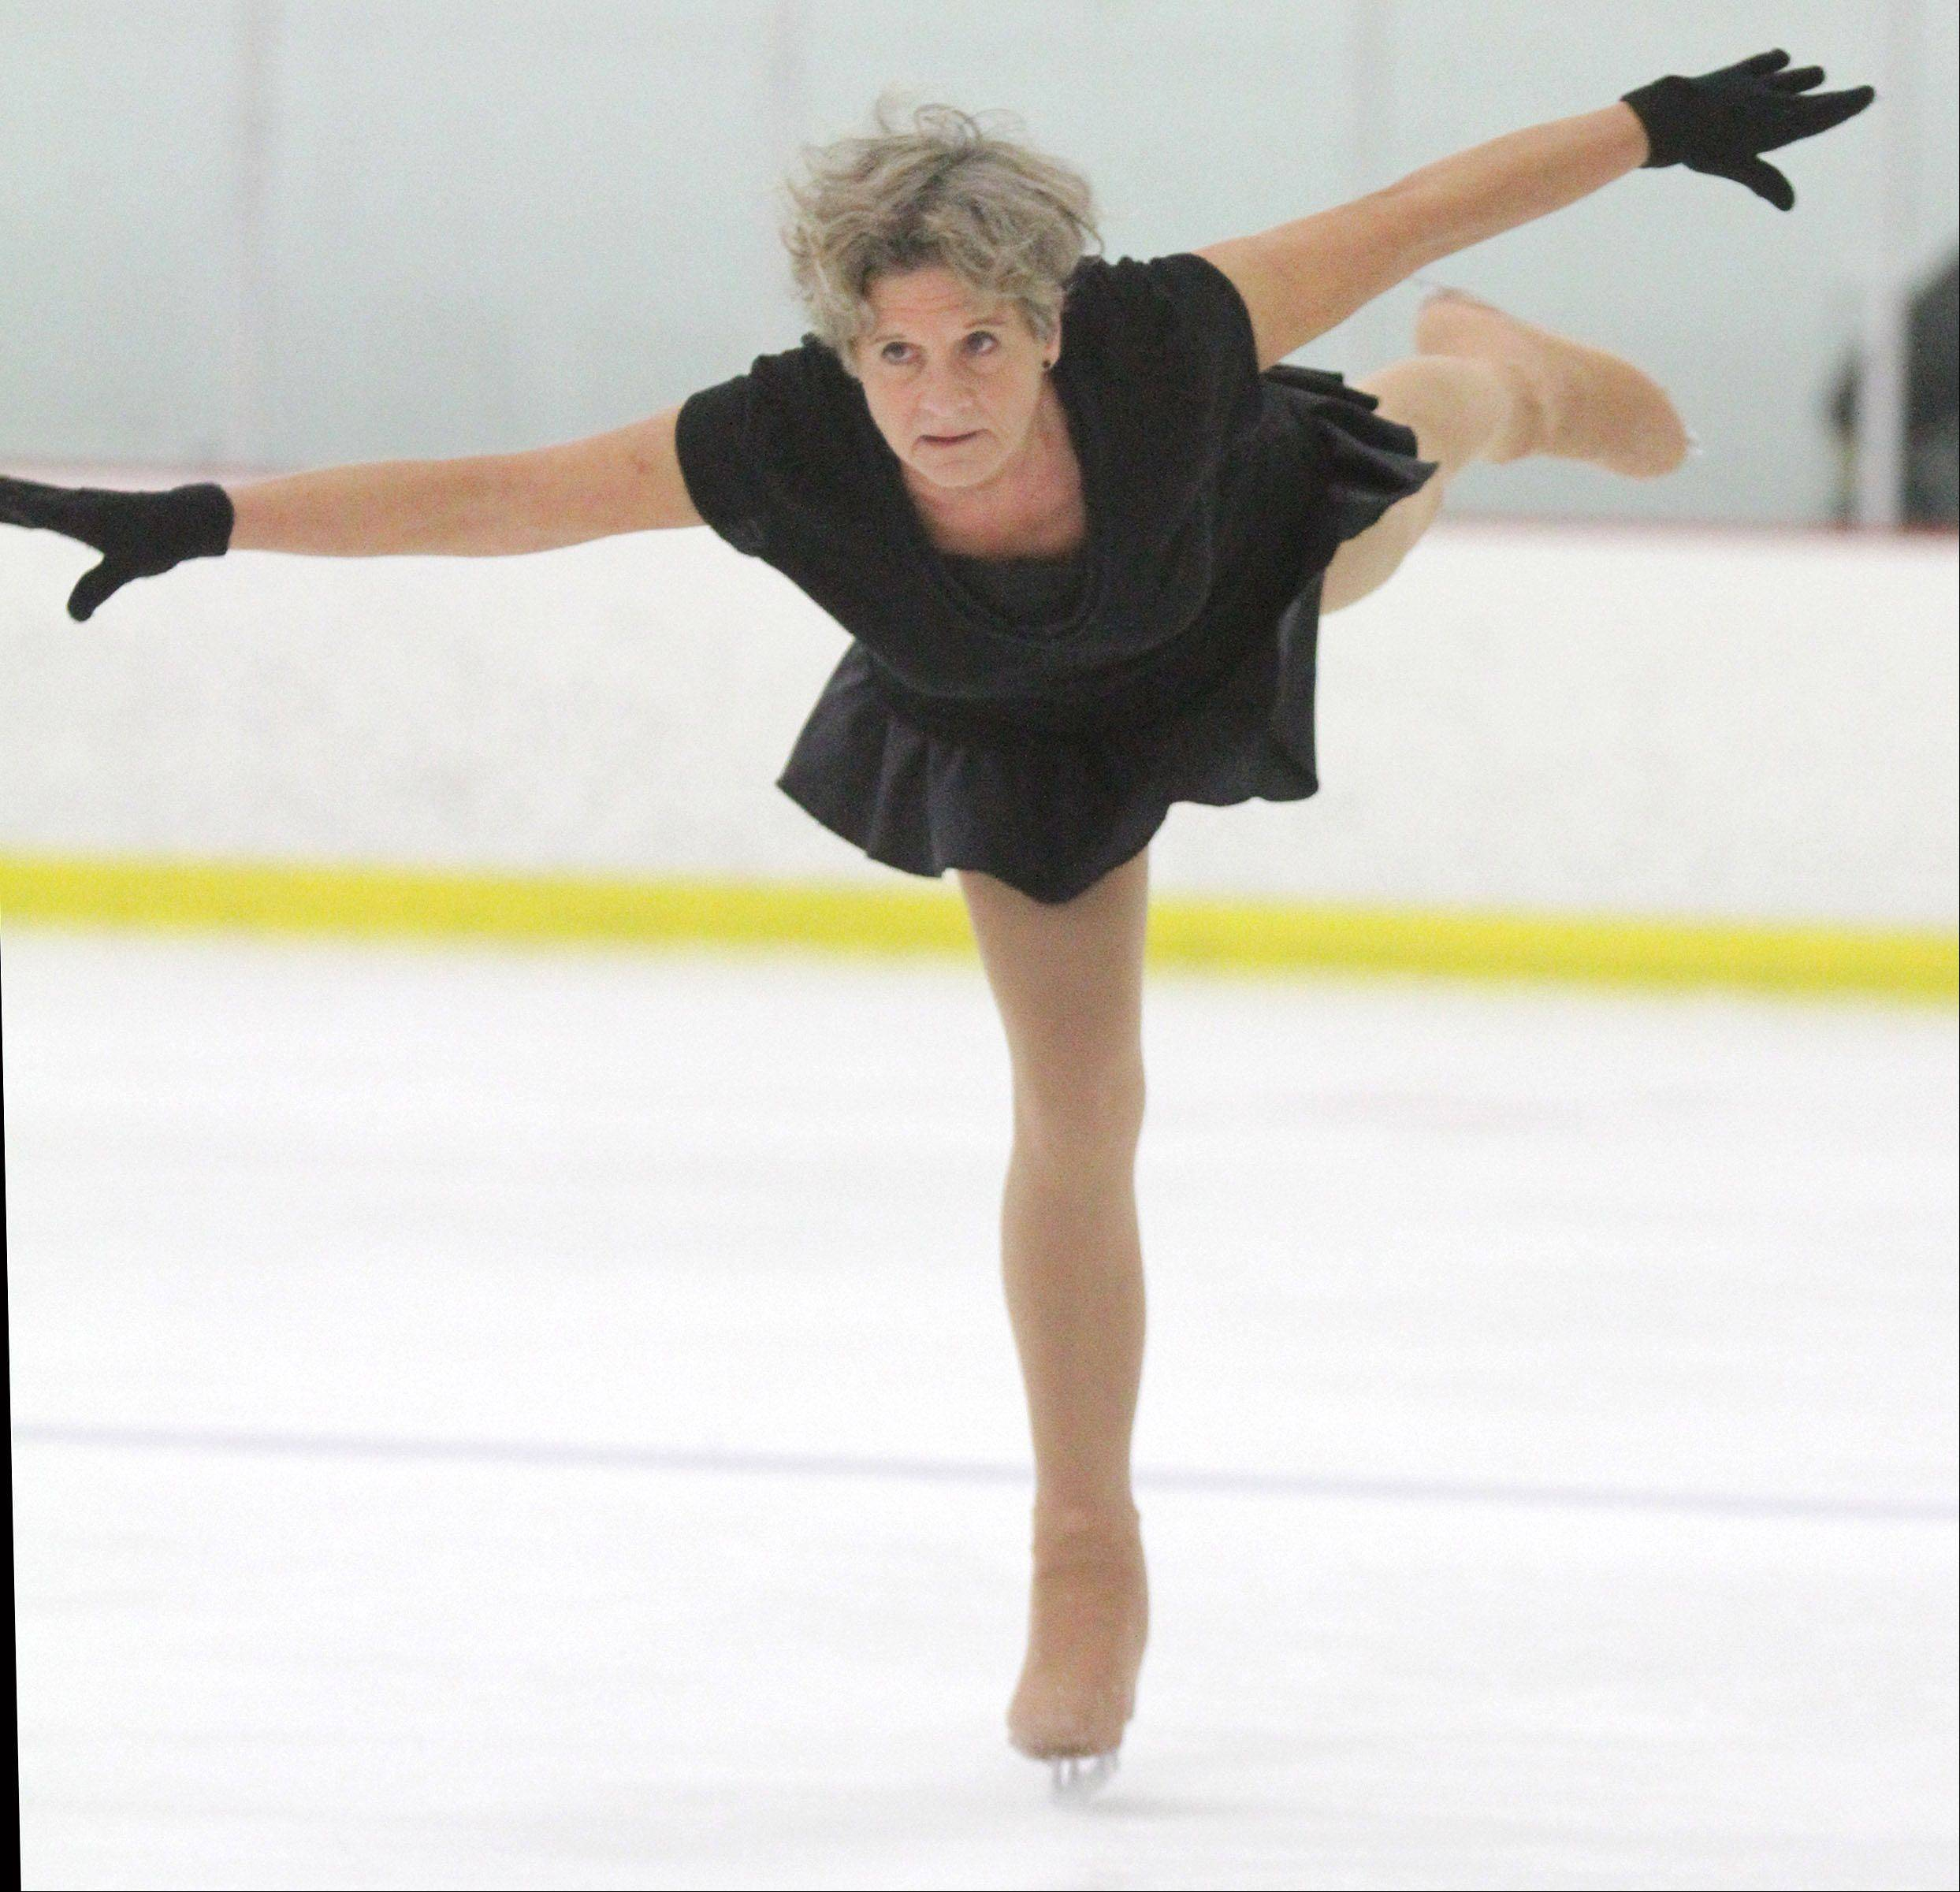 Gabler's poise on the ice won her the gold medal in the recent Chicago Open competition for adults.